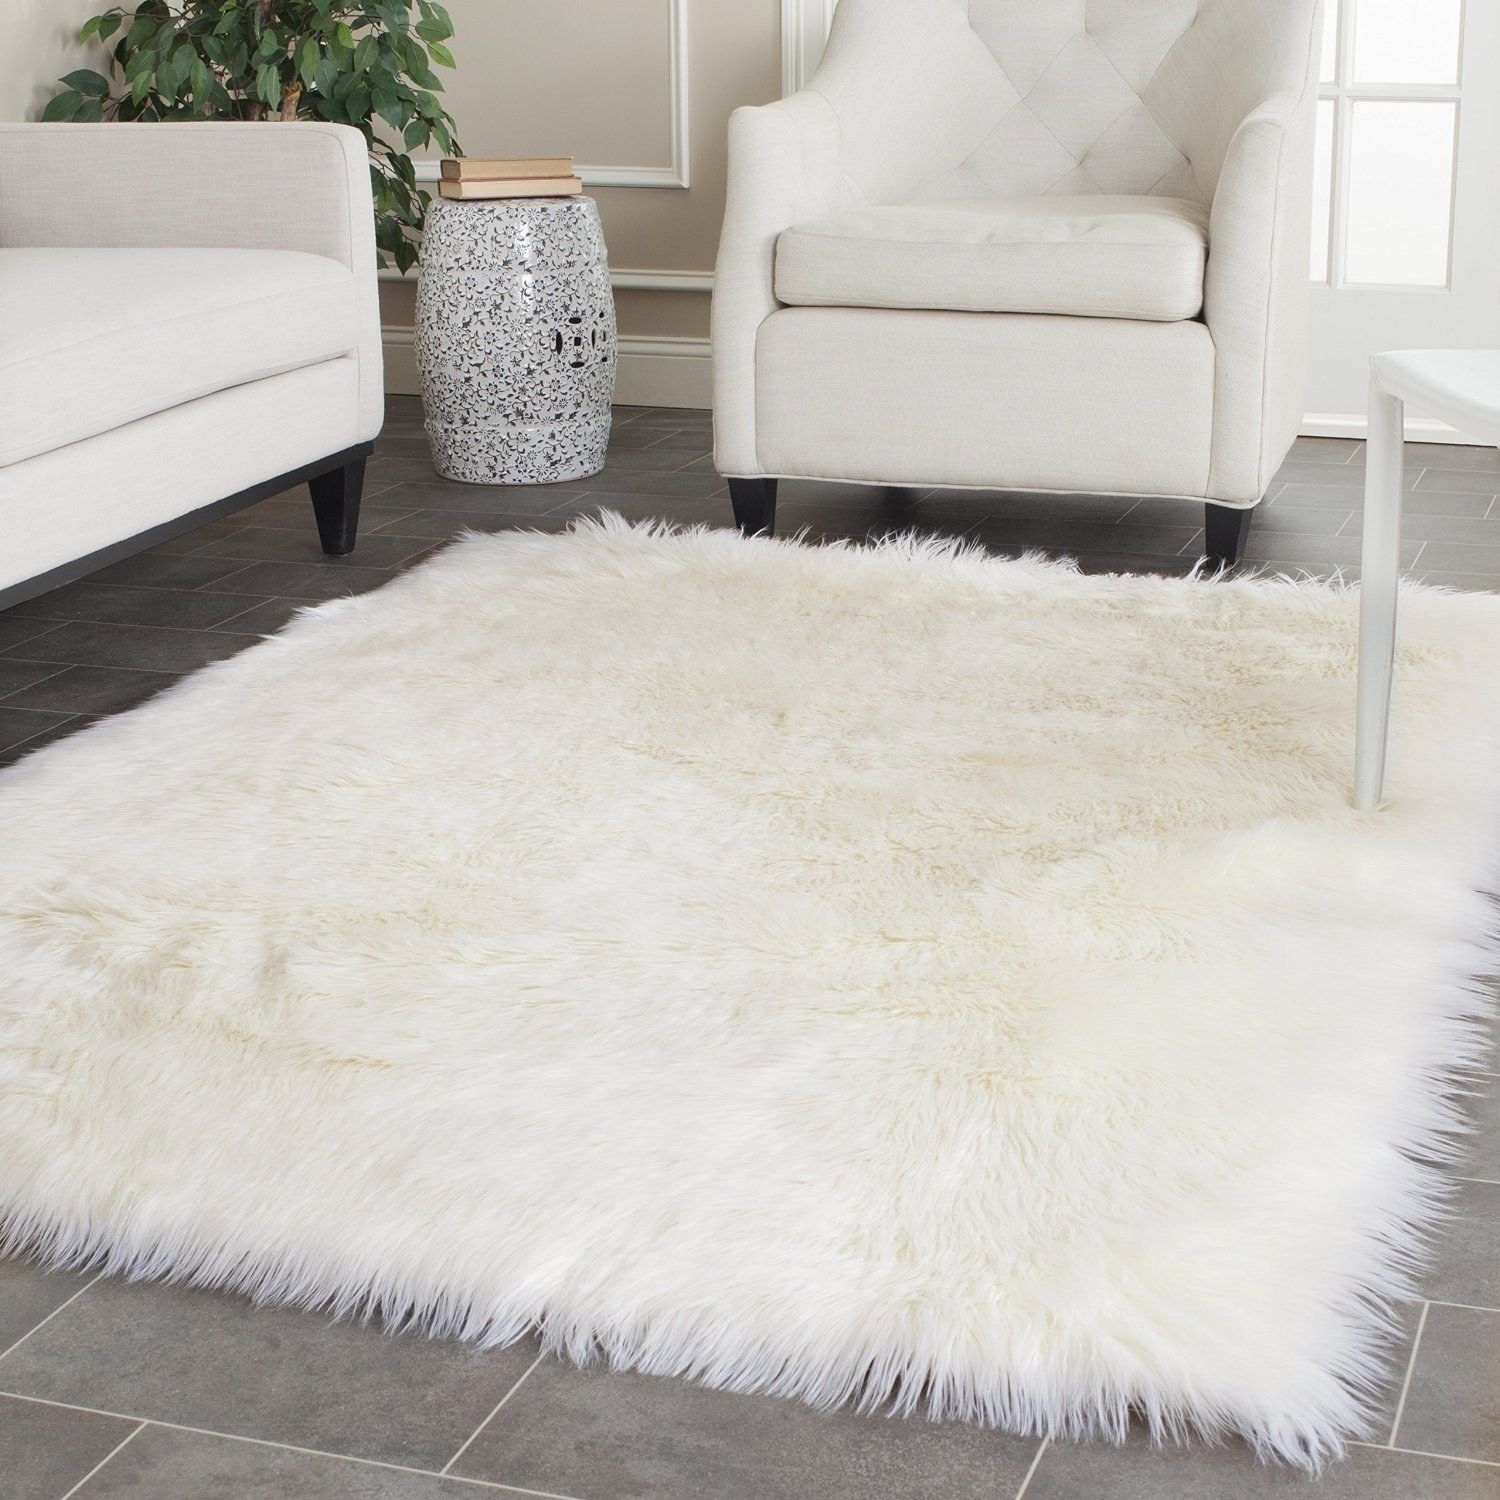 An Area Rug That Looks Like It Came Straight From Pinterest Heaven